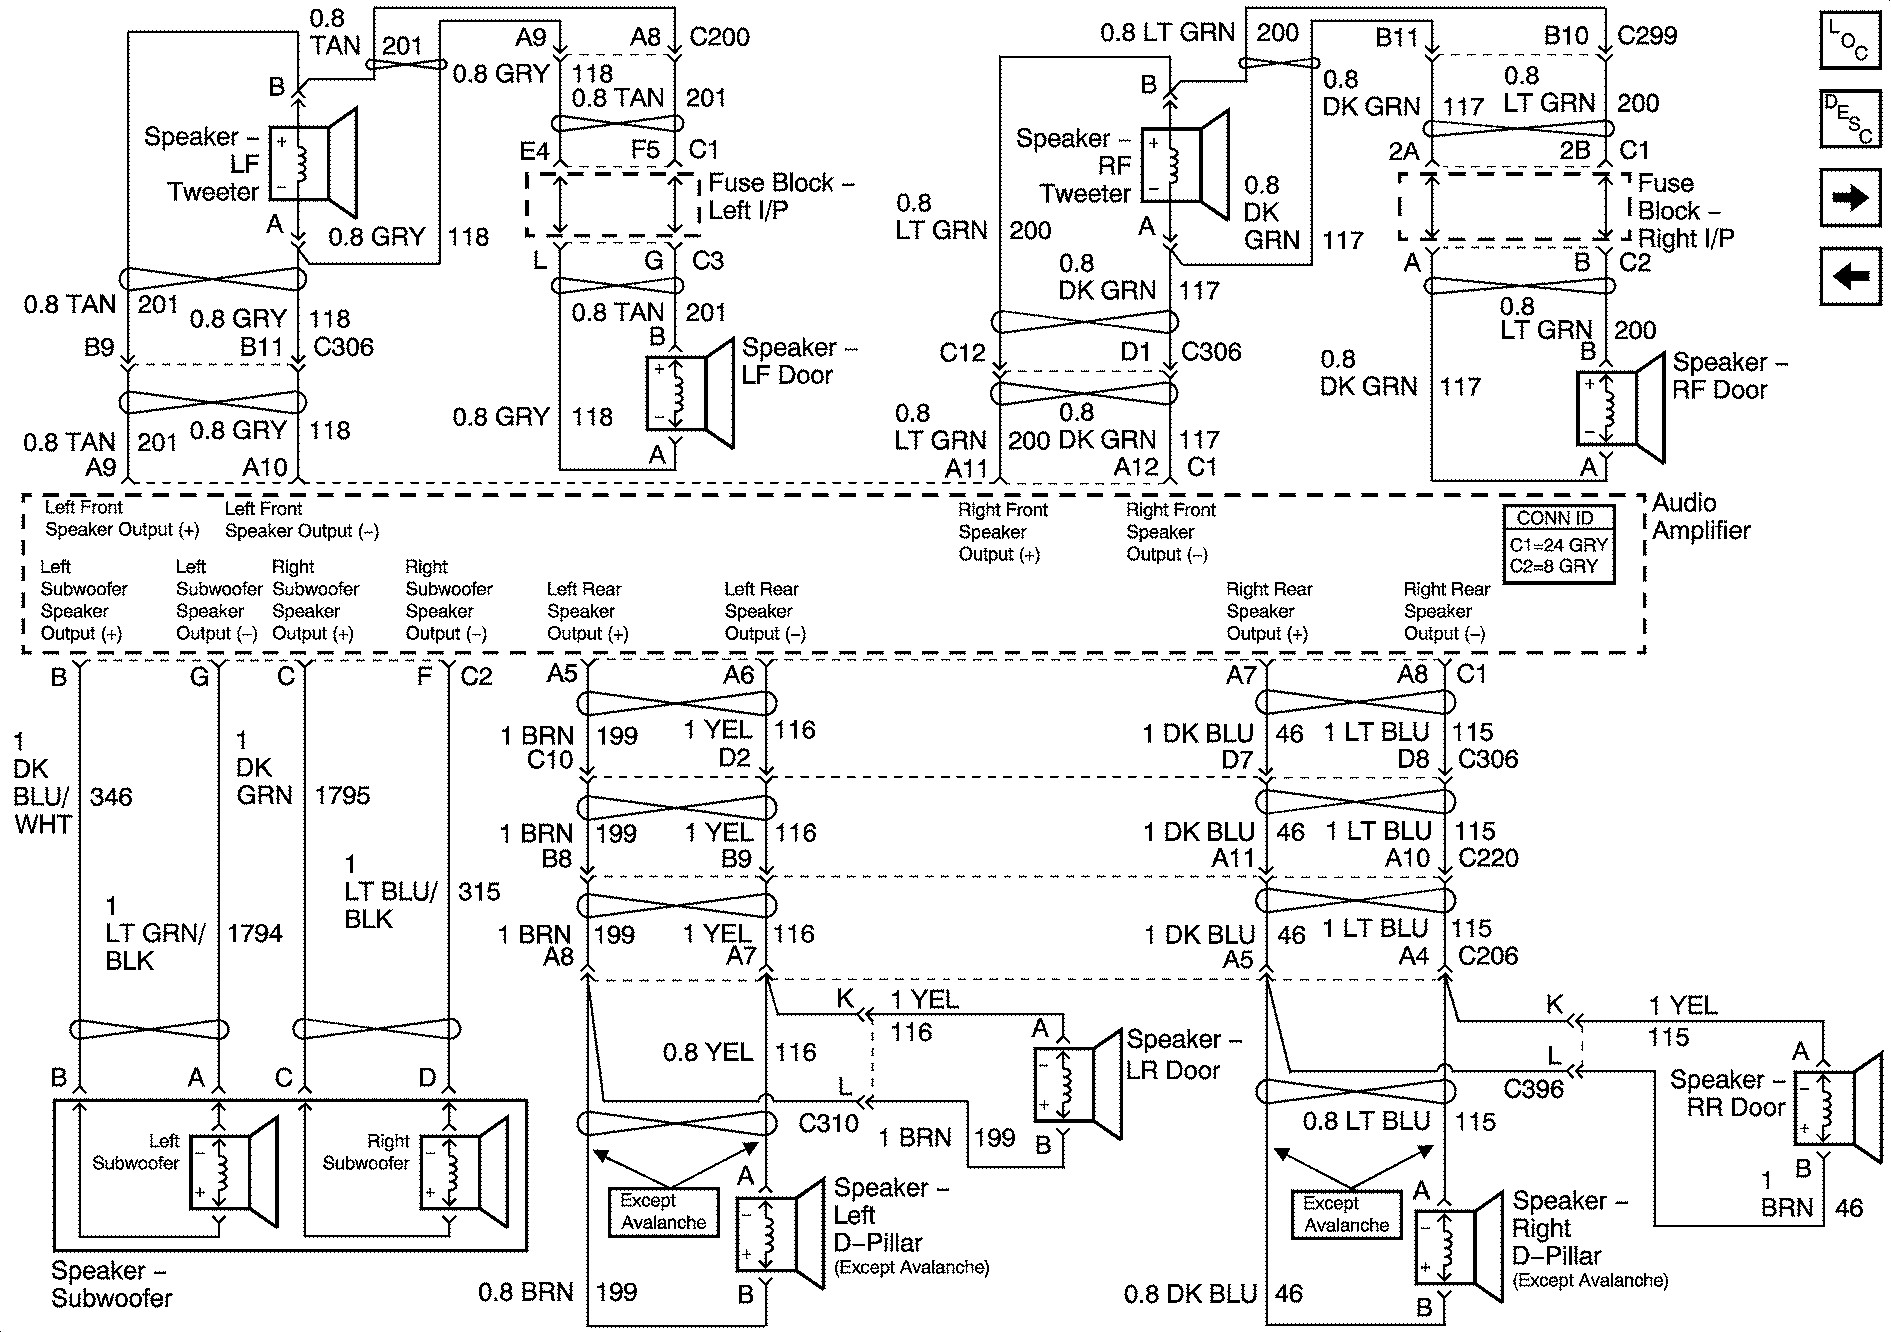 Basic House Wiring Group Picture Image By Tag Keywordpicturescom